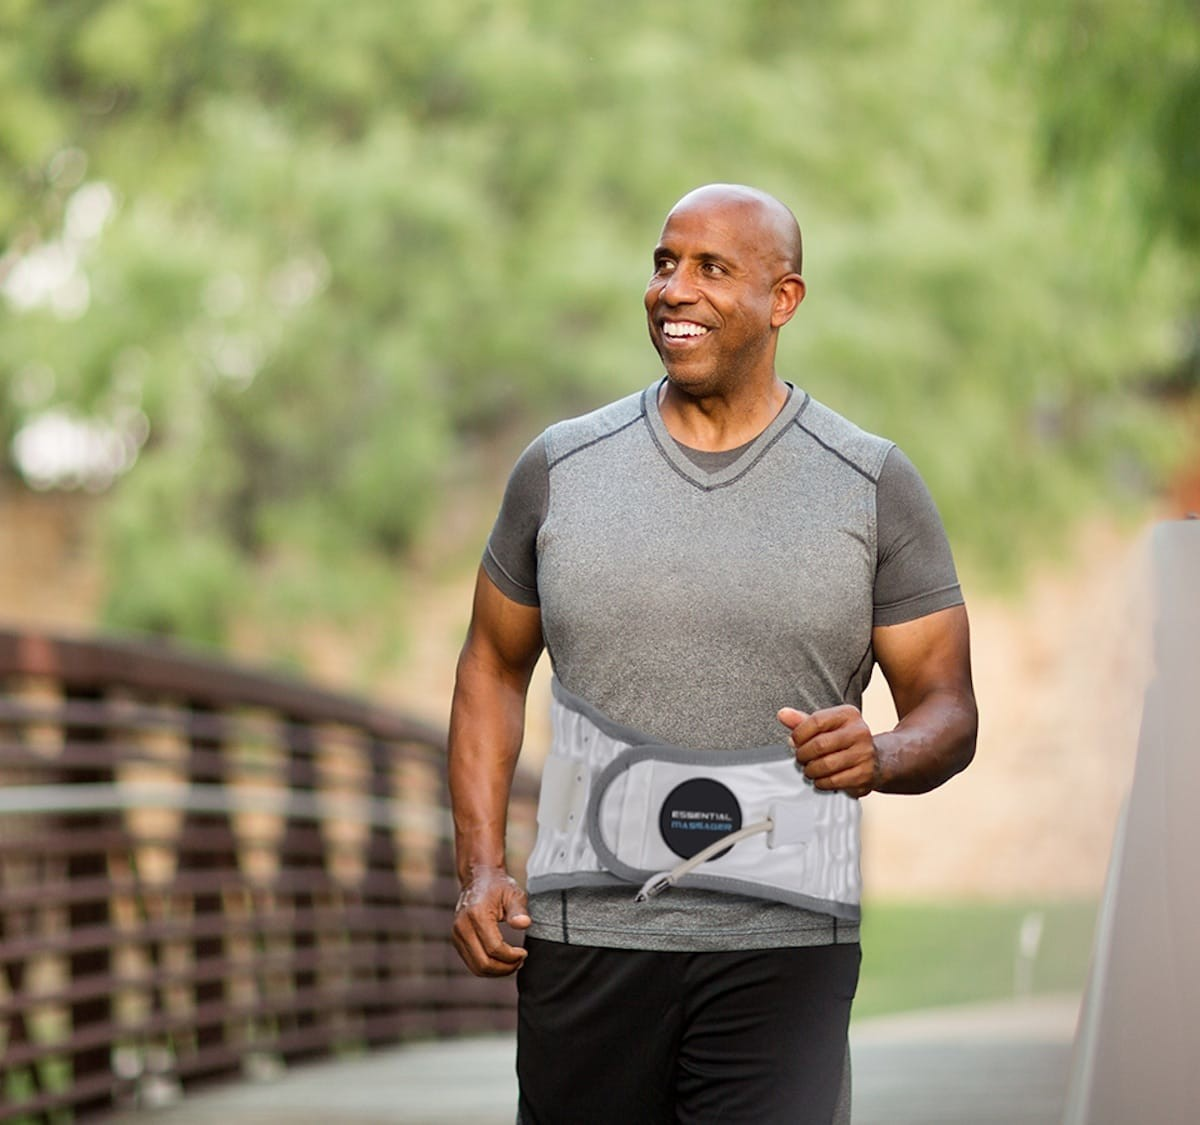 The Essential Massager Lumbar Decompression Belt helps heal lower back conditions